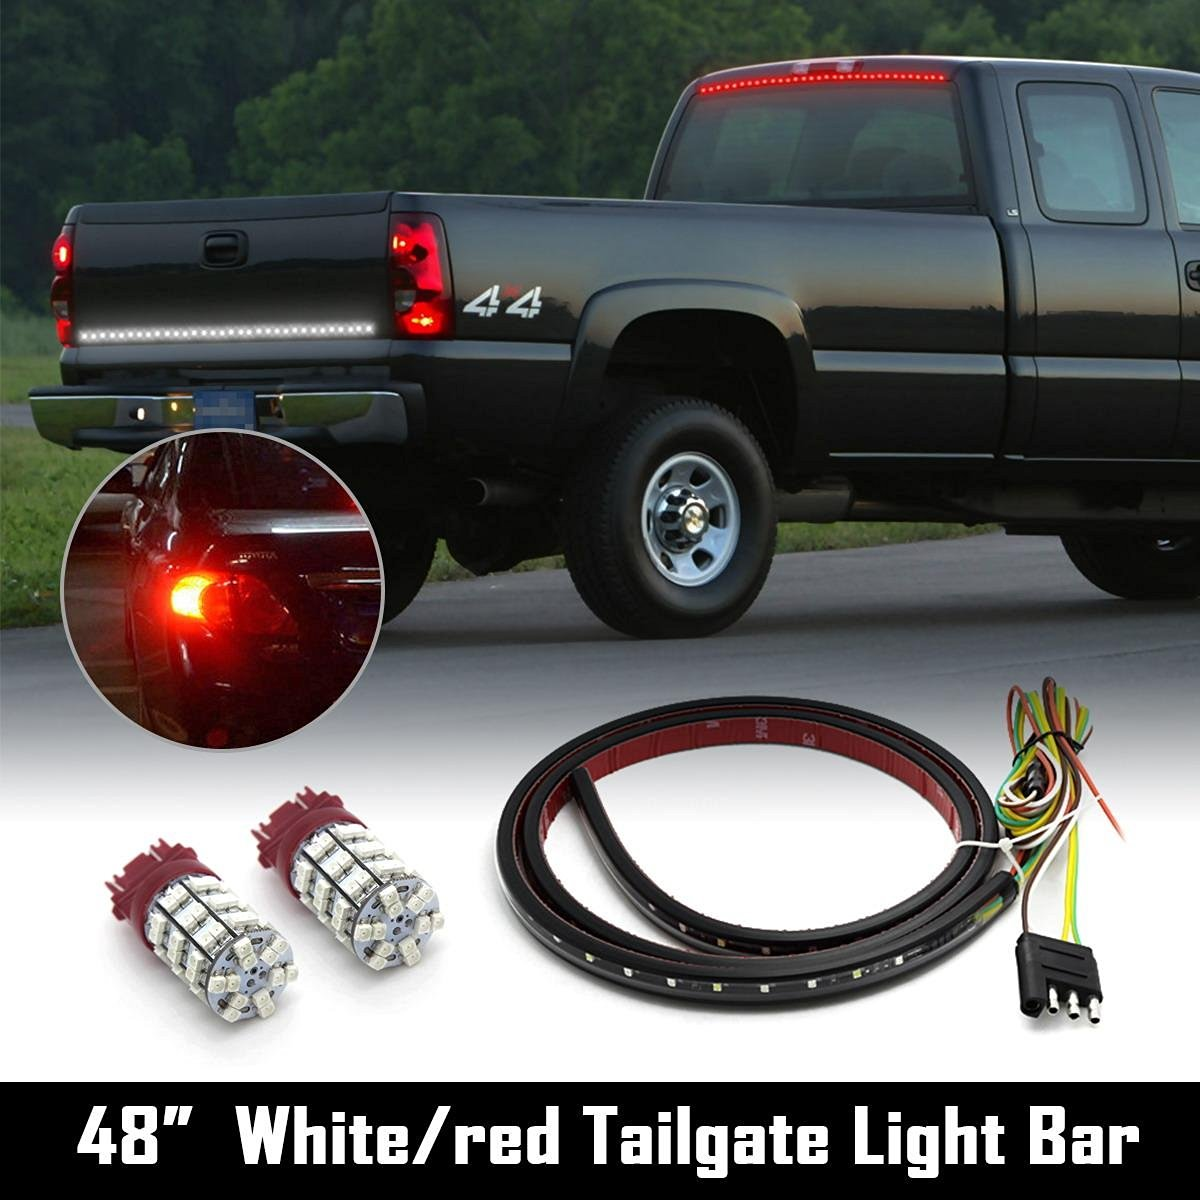 "Partsam Multifunction White/Red Tailgate Strip Bar 48""+ 2x3157 Red LED Rear Turn Signal"